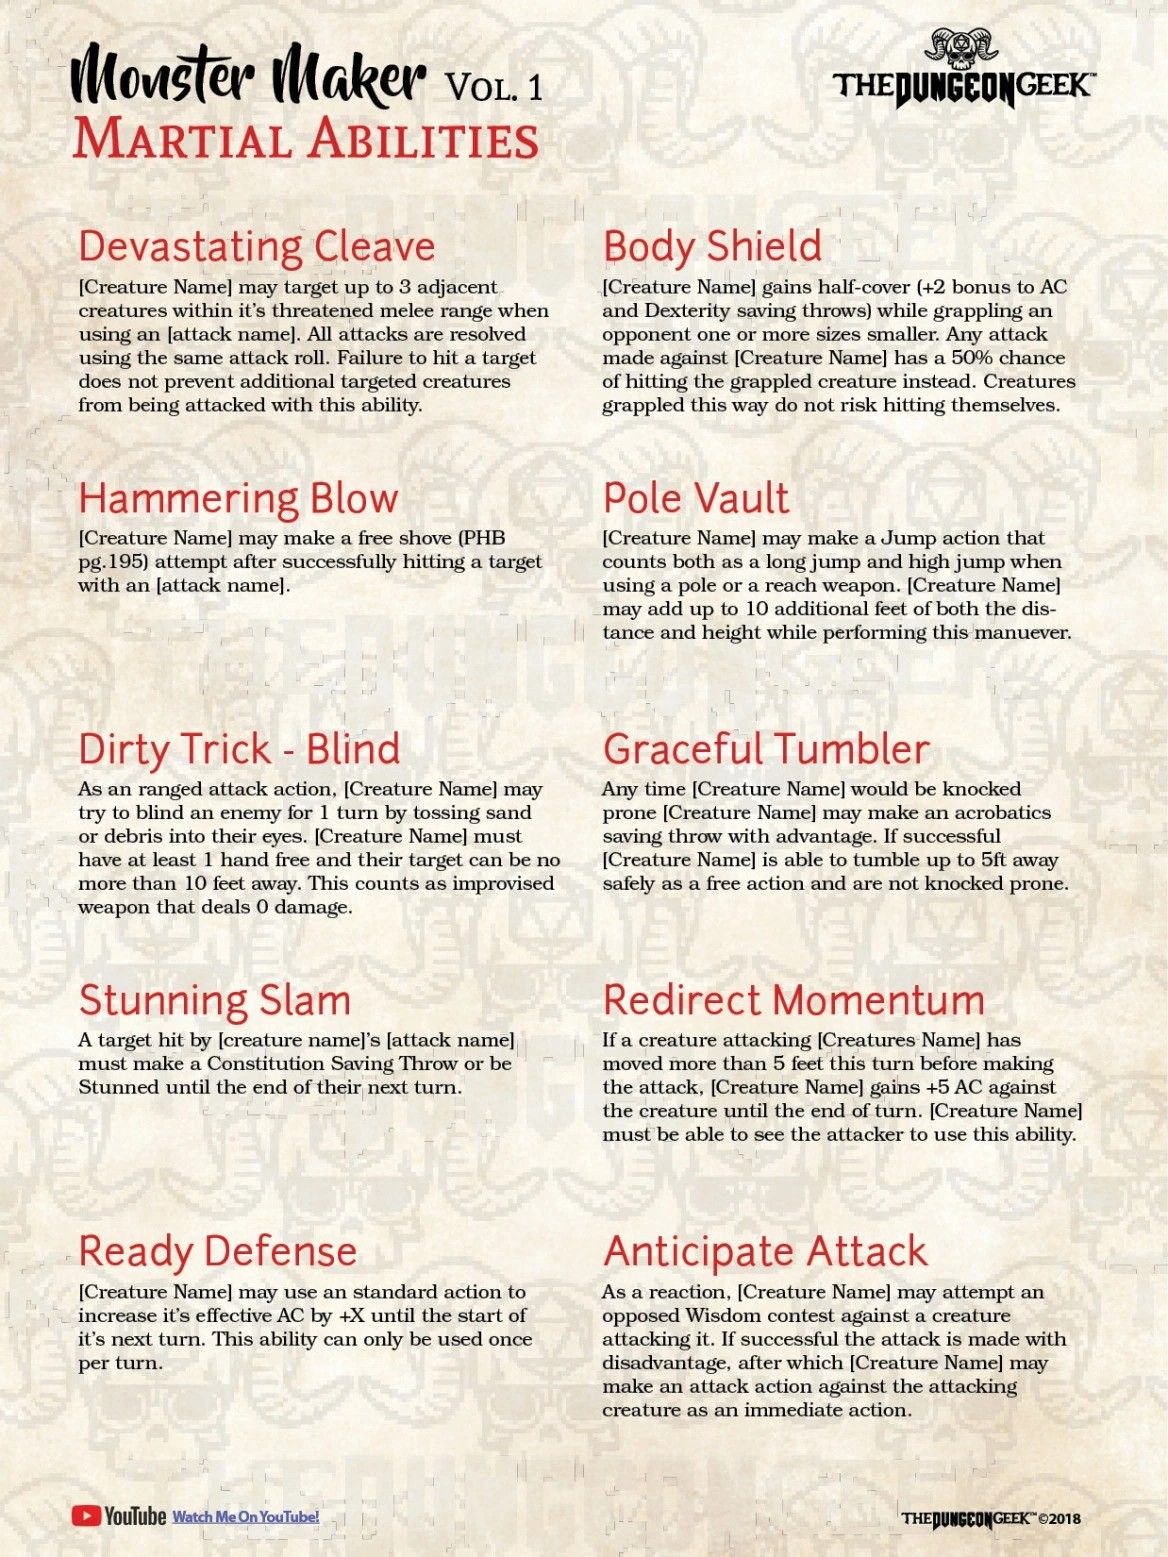 D&D 5E homebrew monster special abilities dm tips and tricks